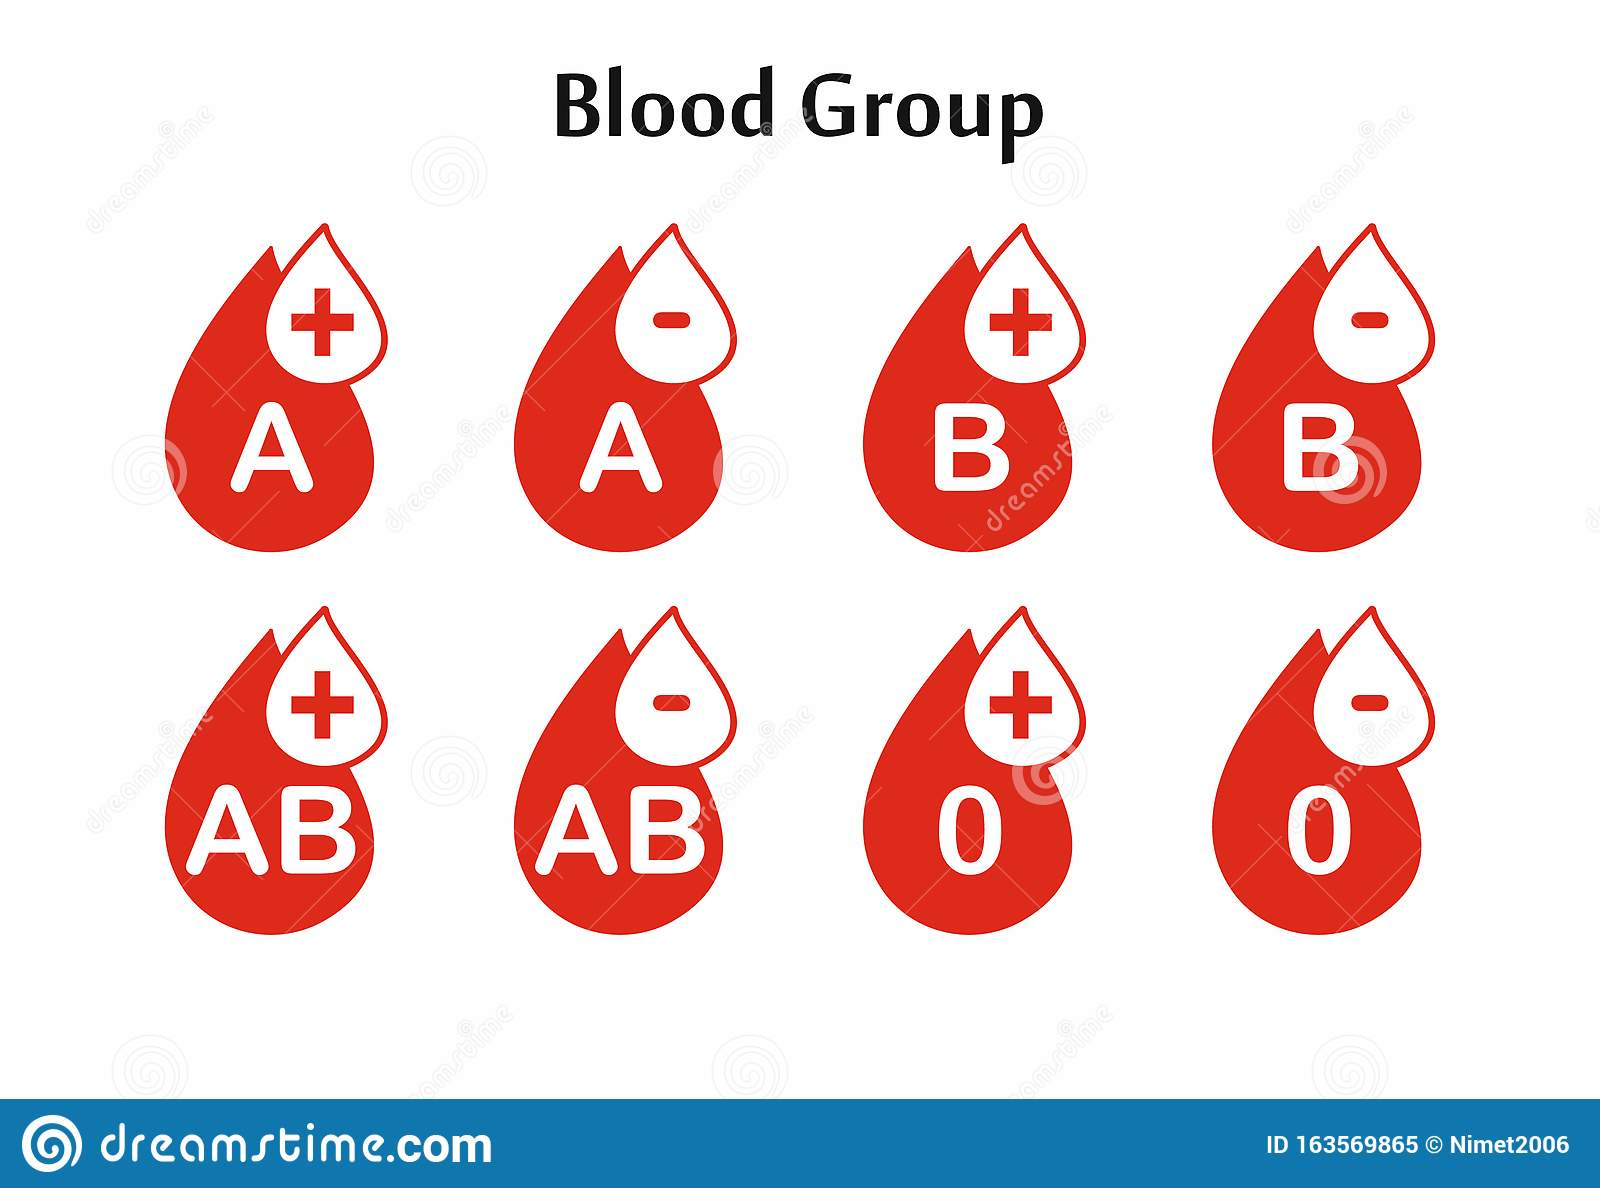 Blood and jesus rh negative The Reason